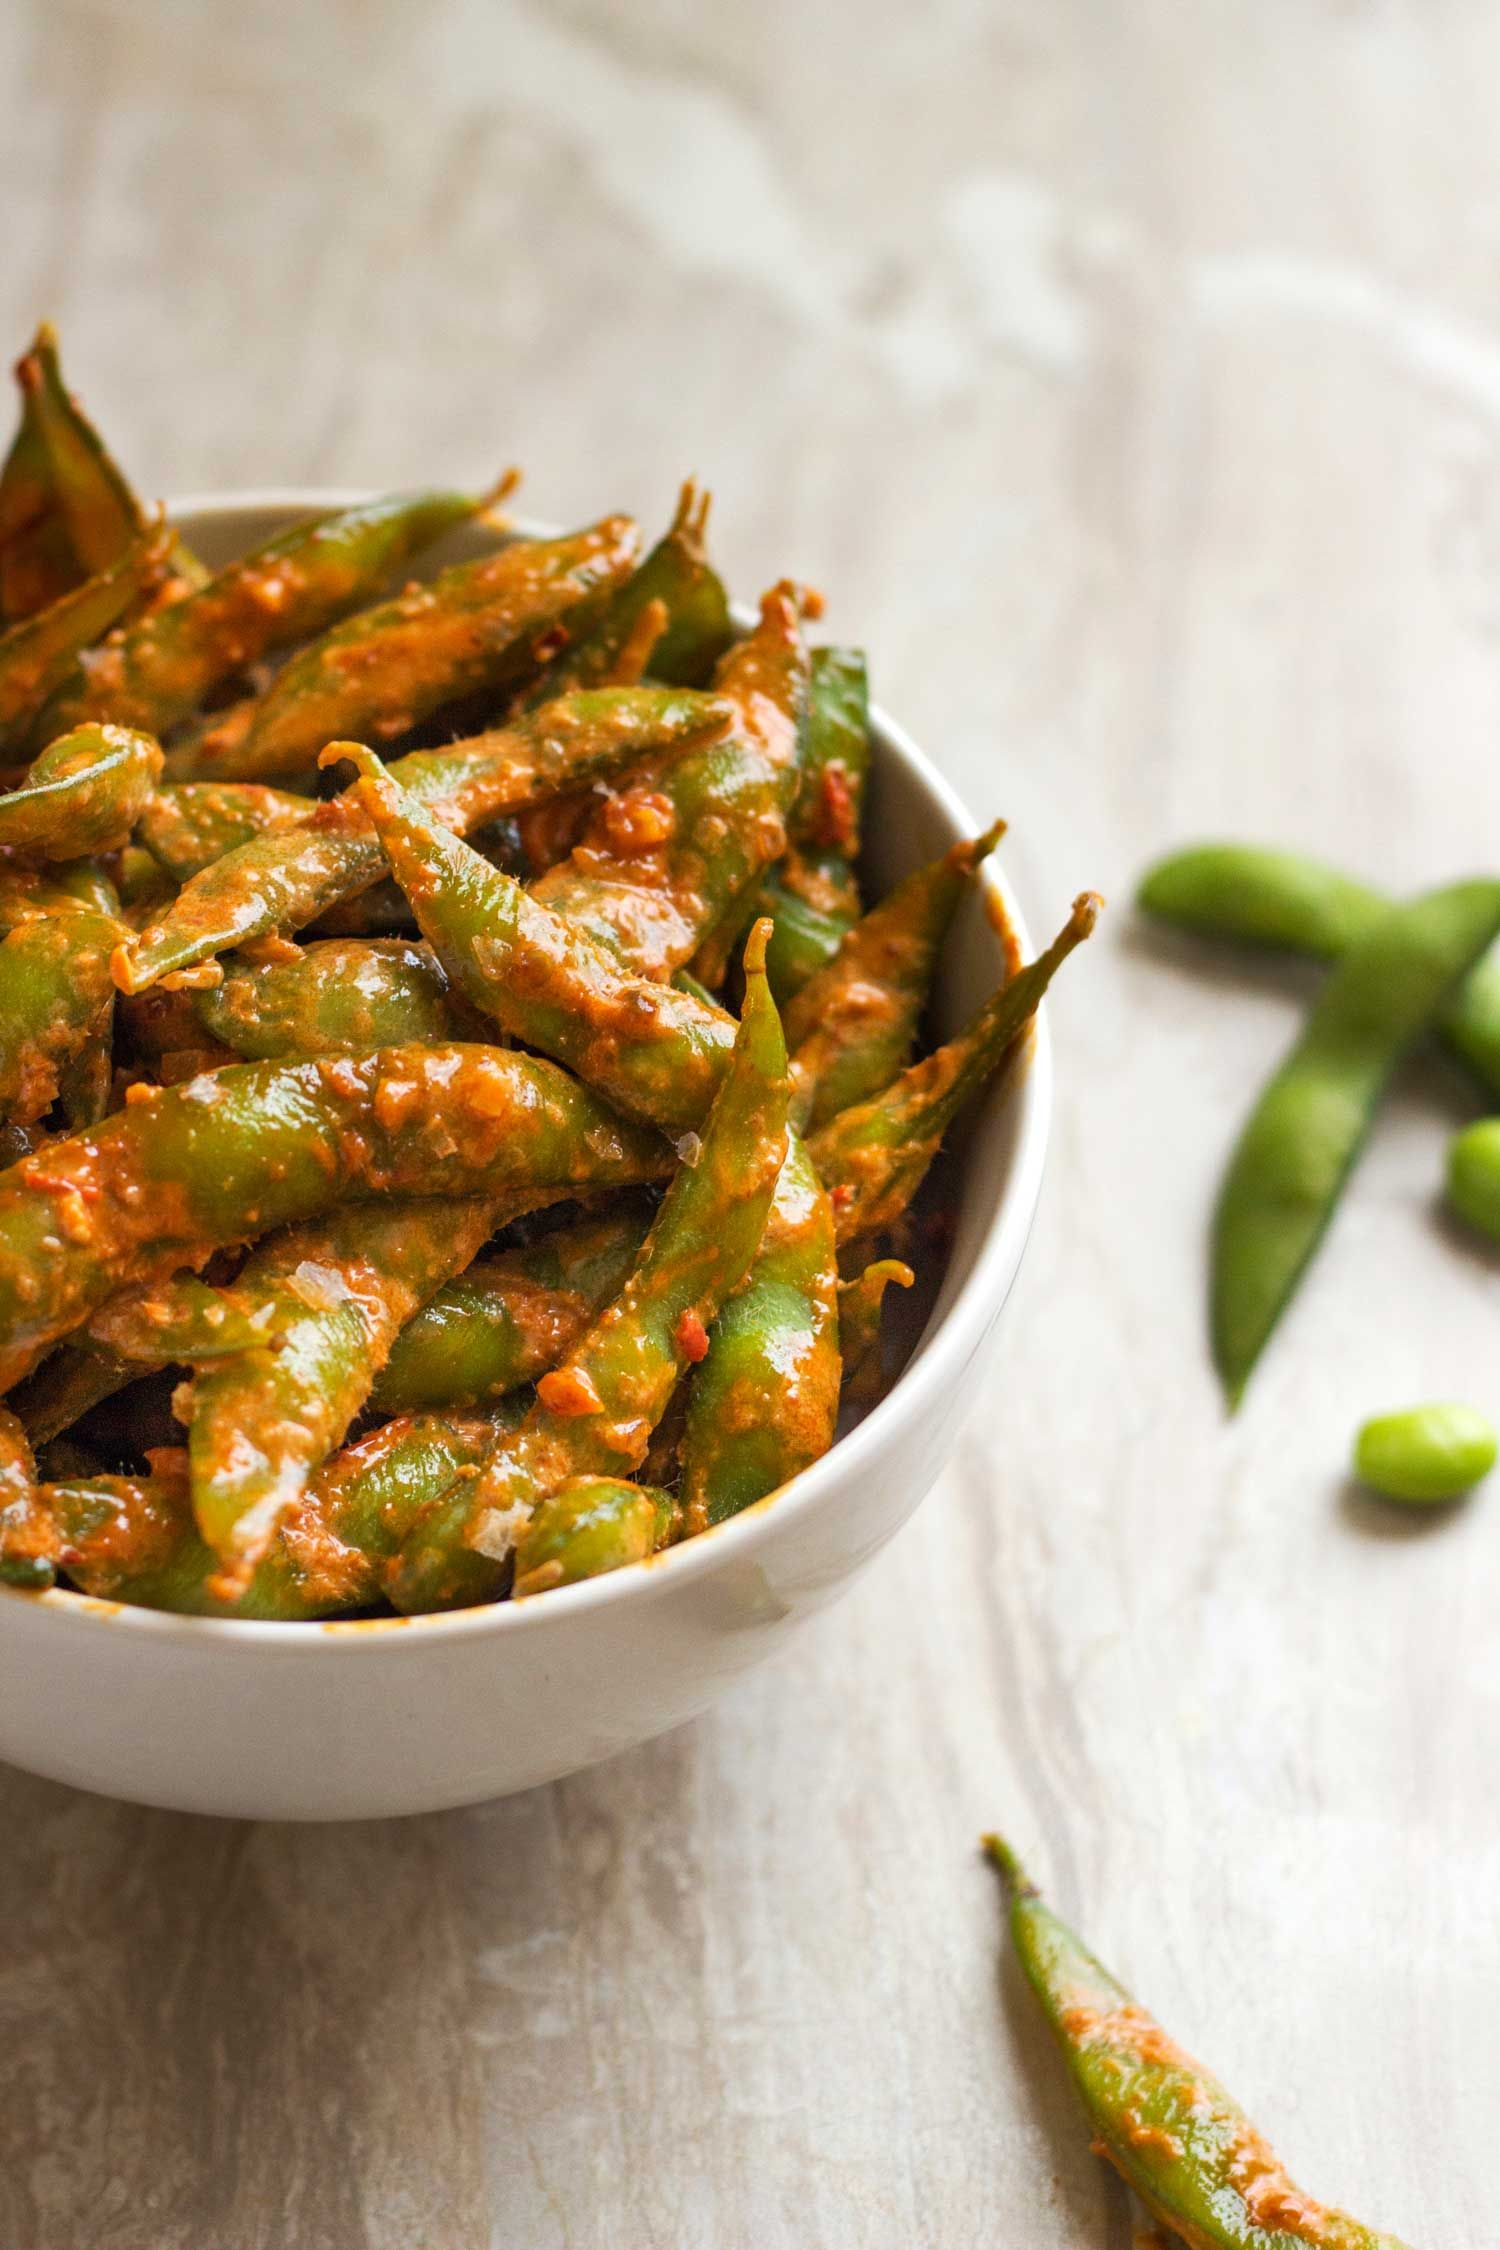 Garlic And Chili Spicy Edamame Www Keviniscooking Com With